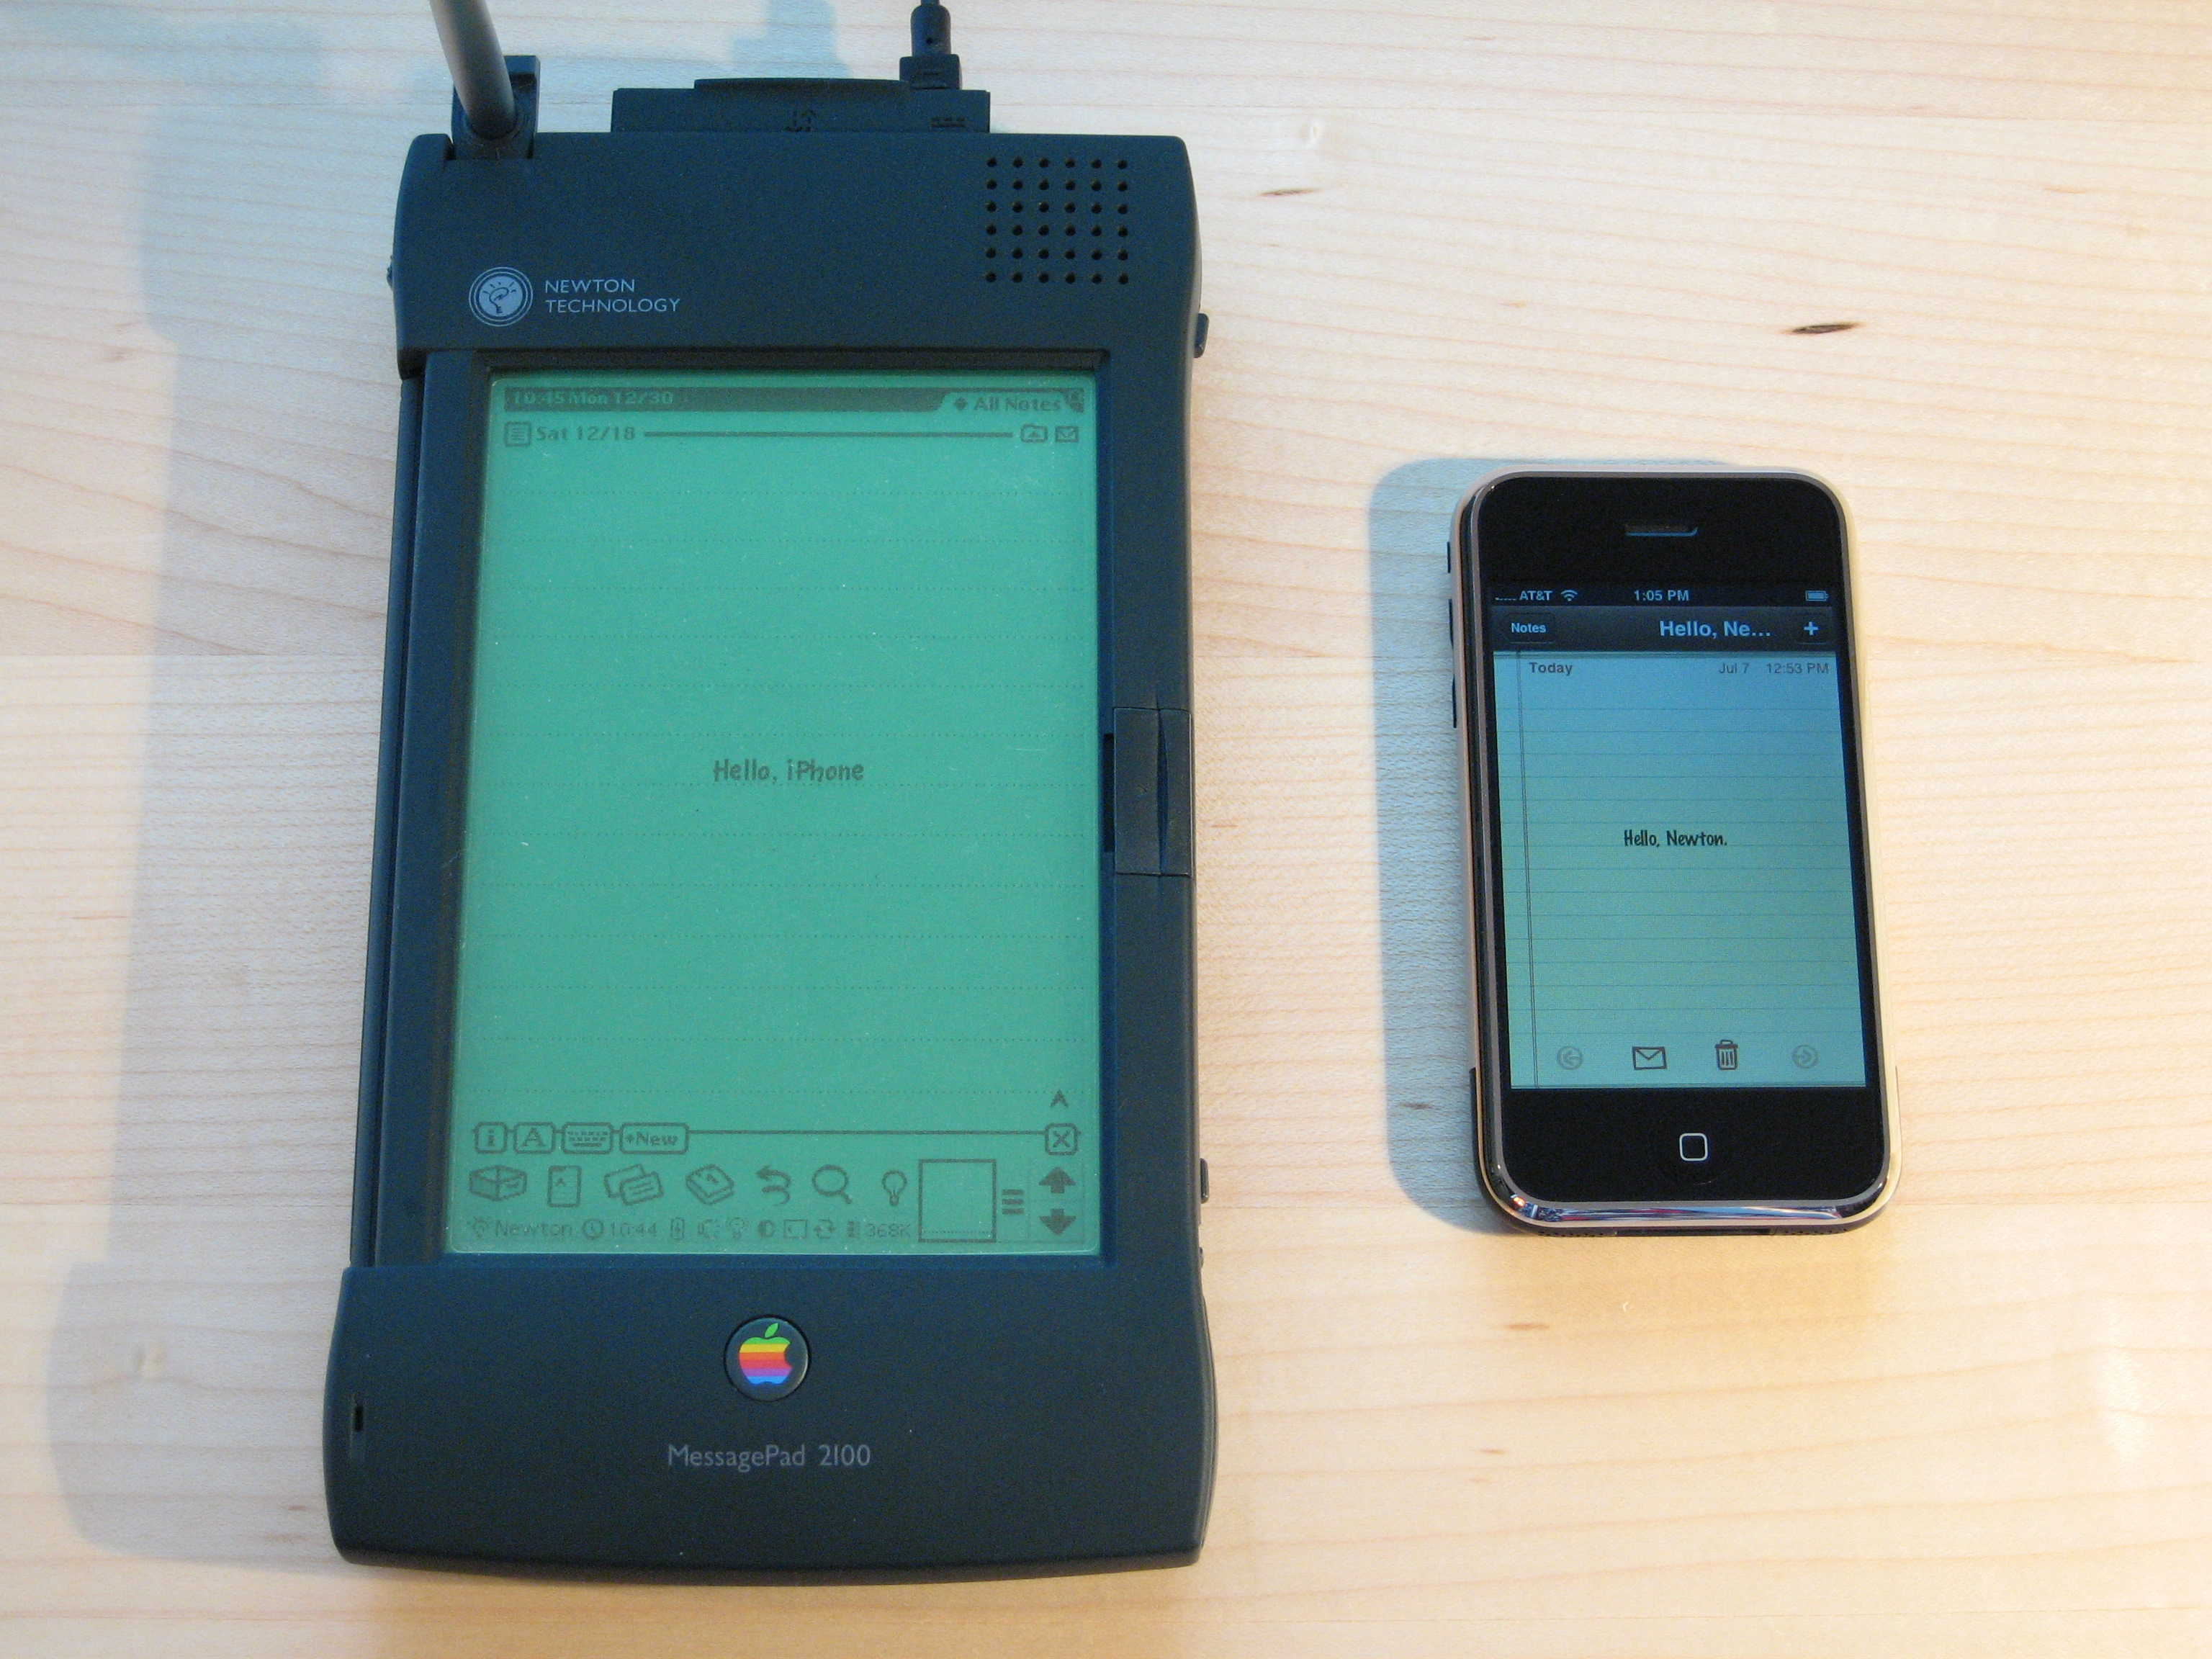 The Newton MessagePad looks gigantic next to an iPhone.